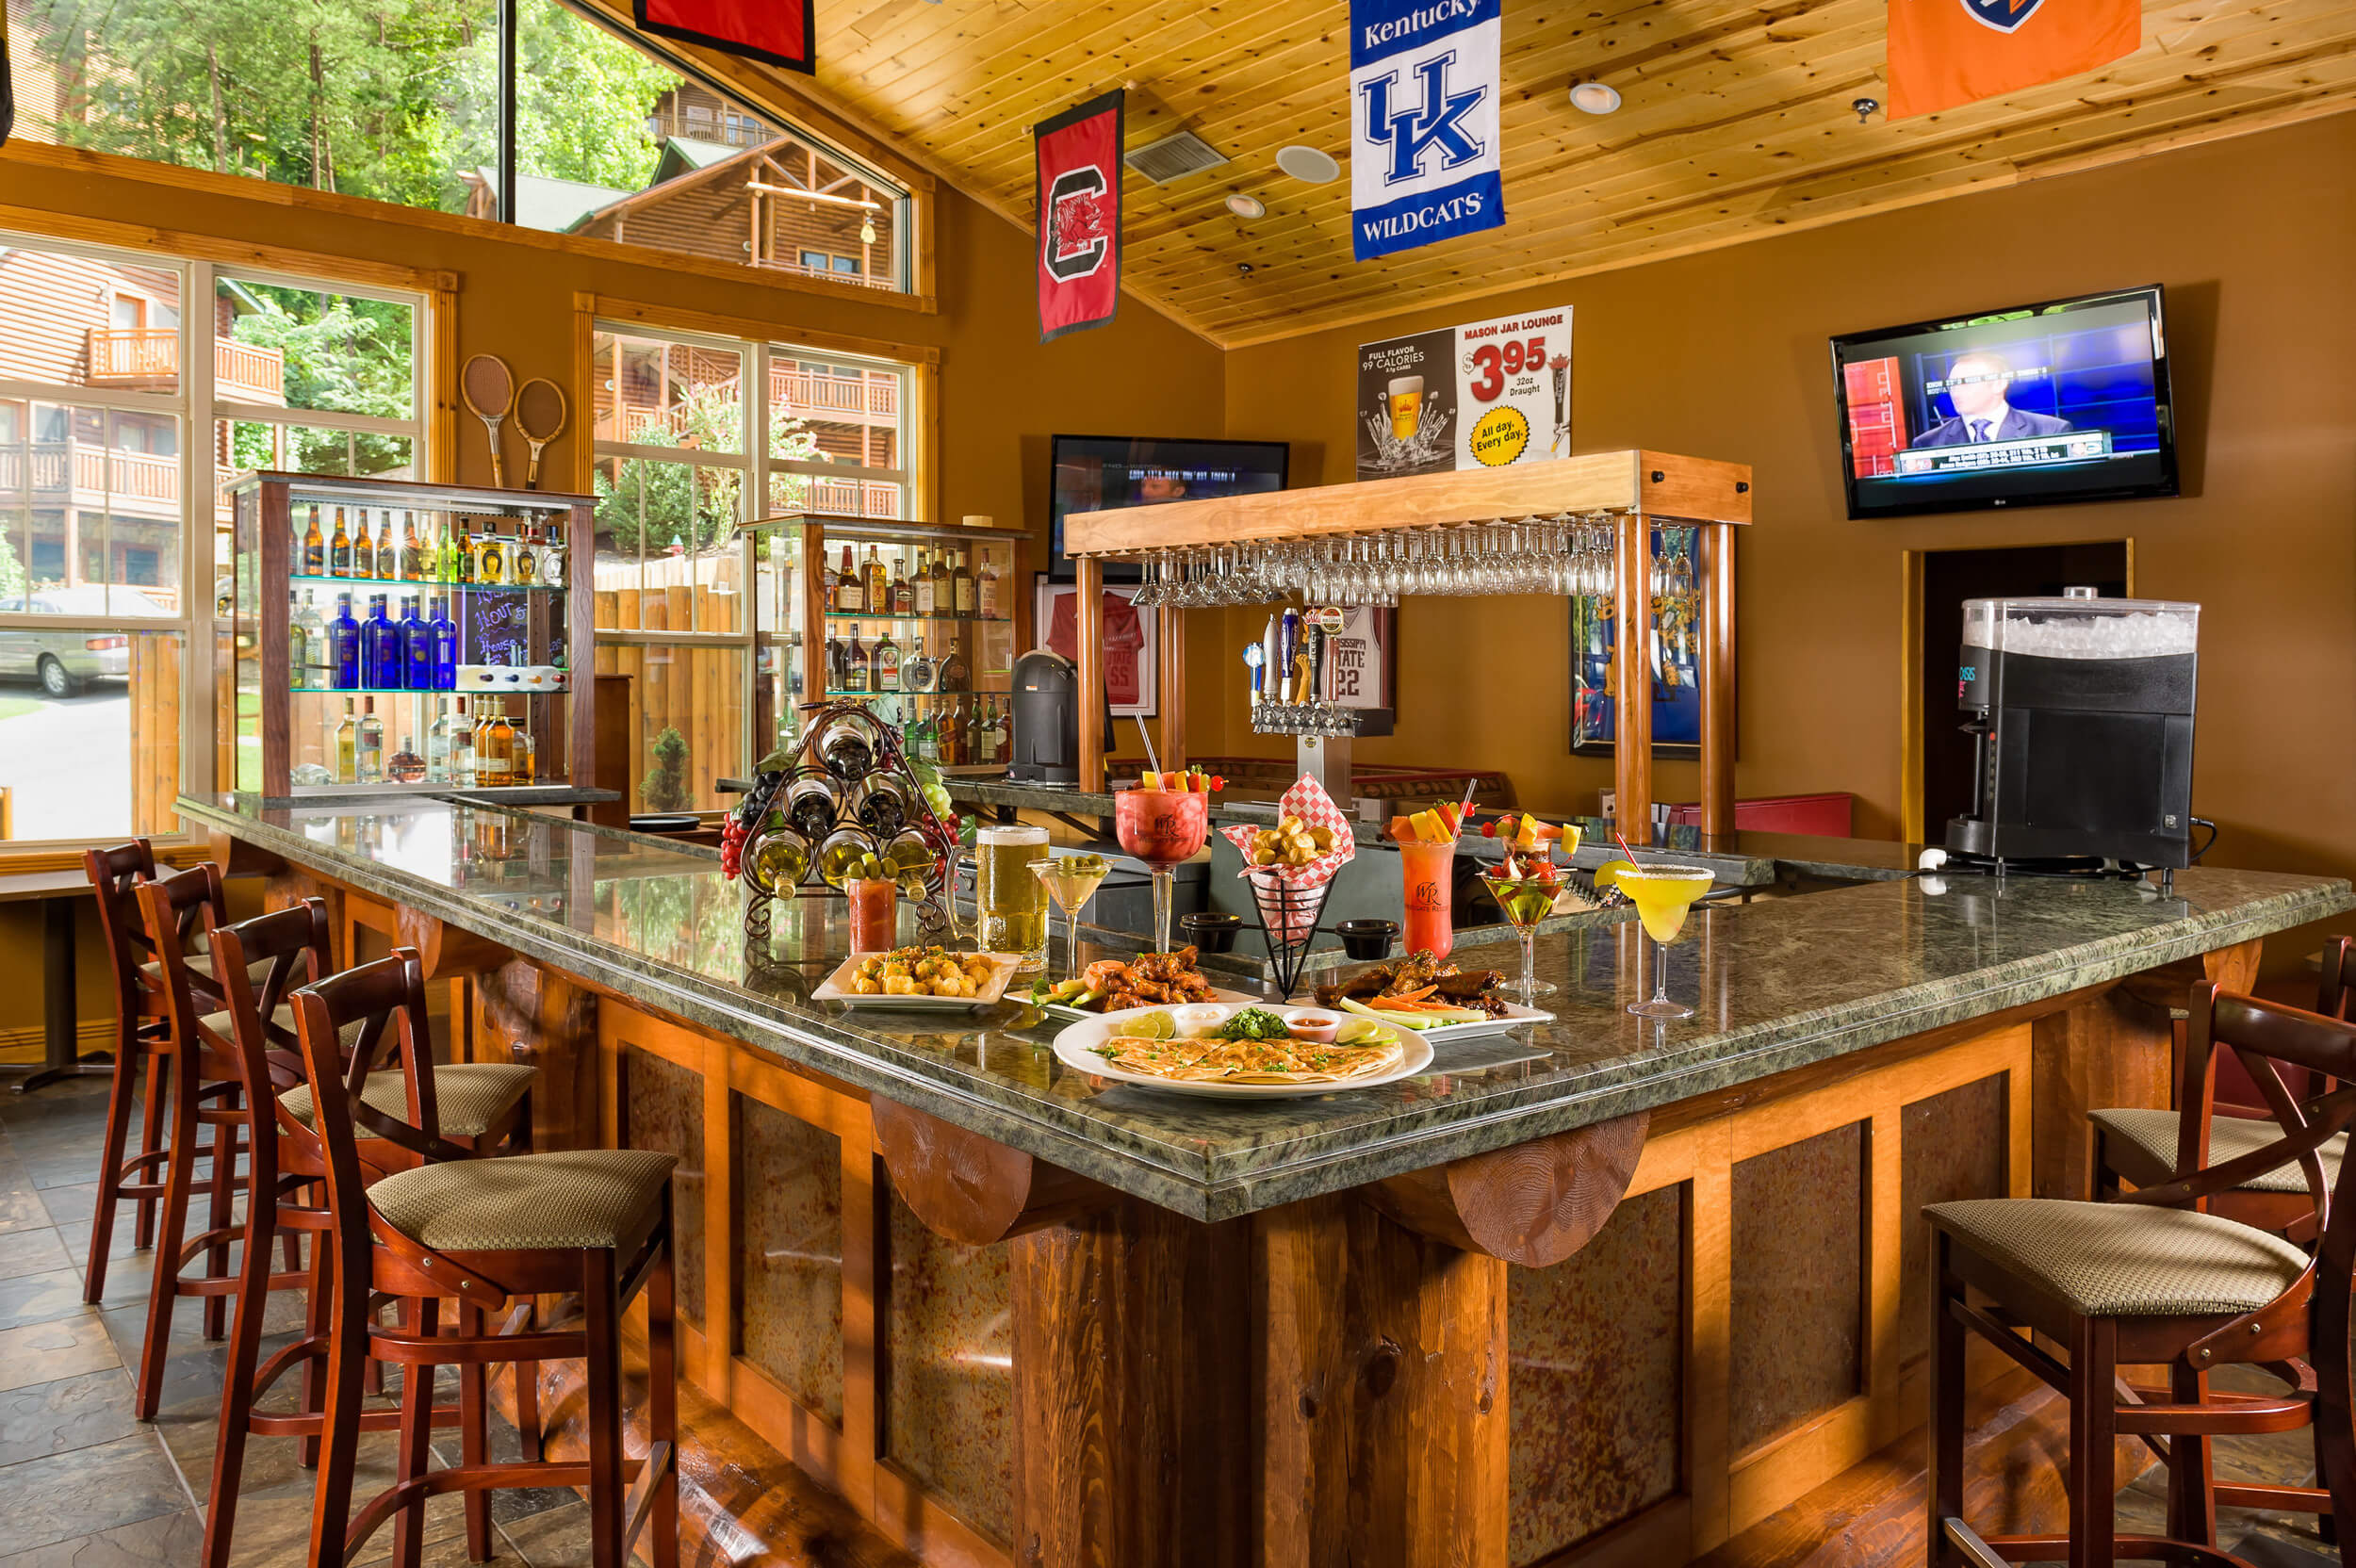 Mason Jar Lounge at our Hotels near Smoky Mountains TN | Westgate Smoky Mountain Resort & Spa | Westgate Resorts